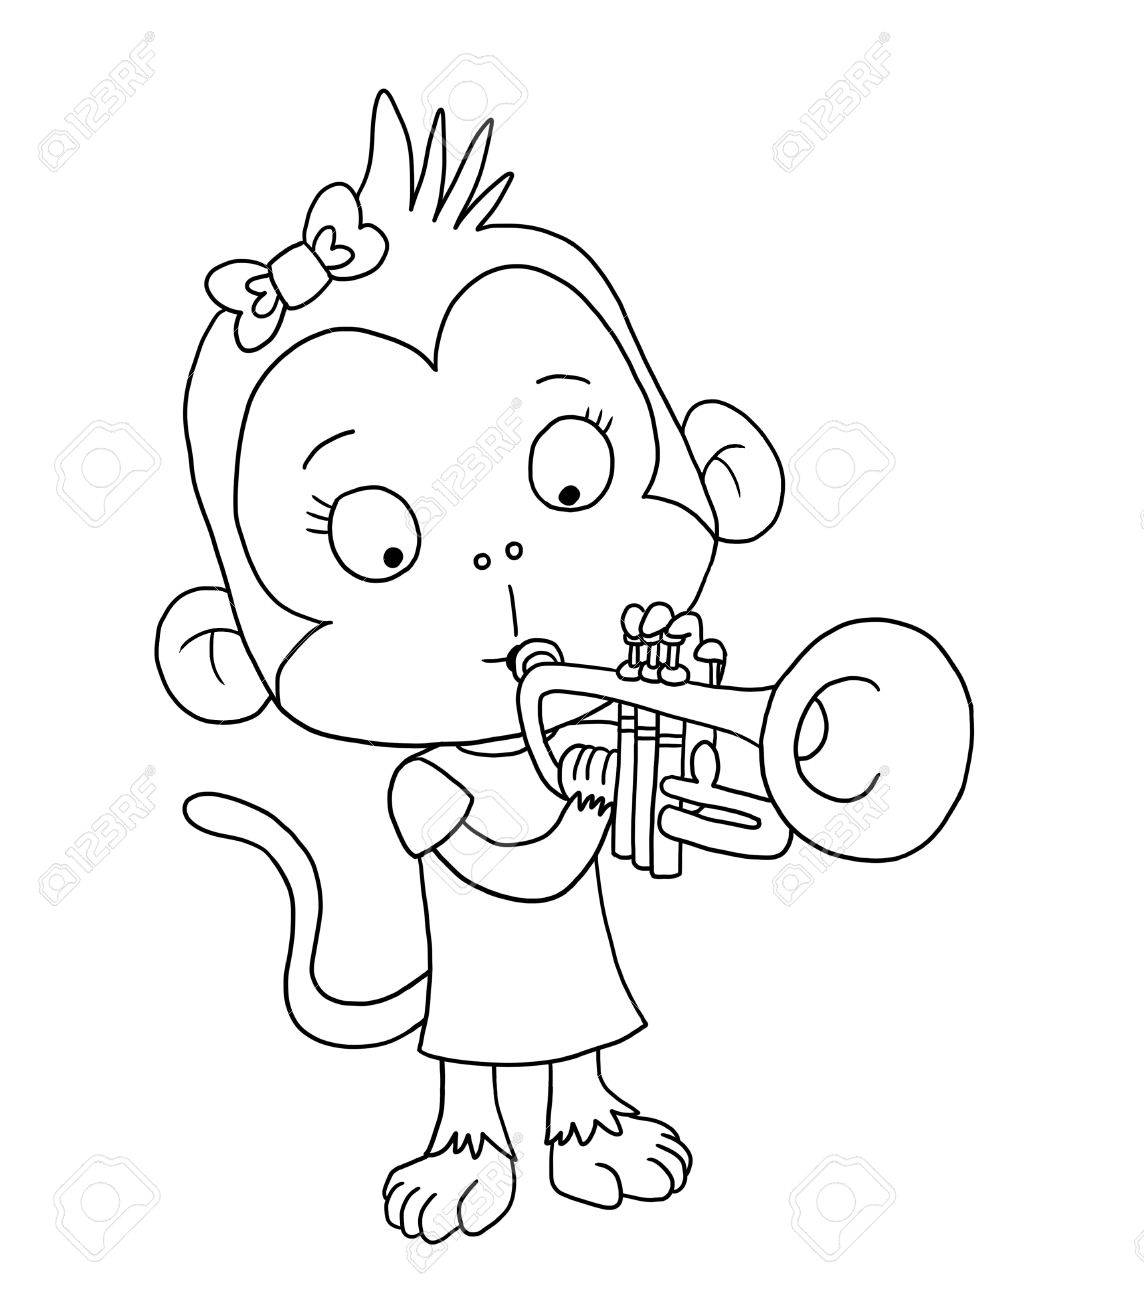 Cute Monkey Playing Trumpet Coloring Page Stock Photo Picture And